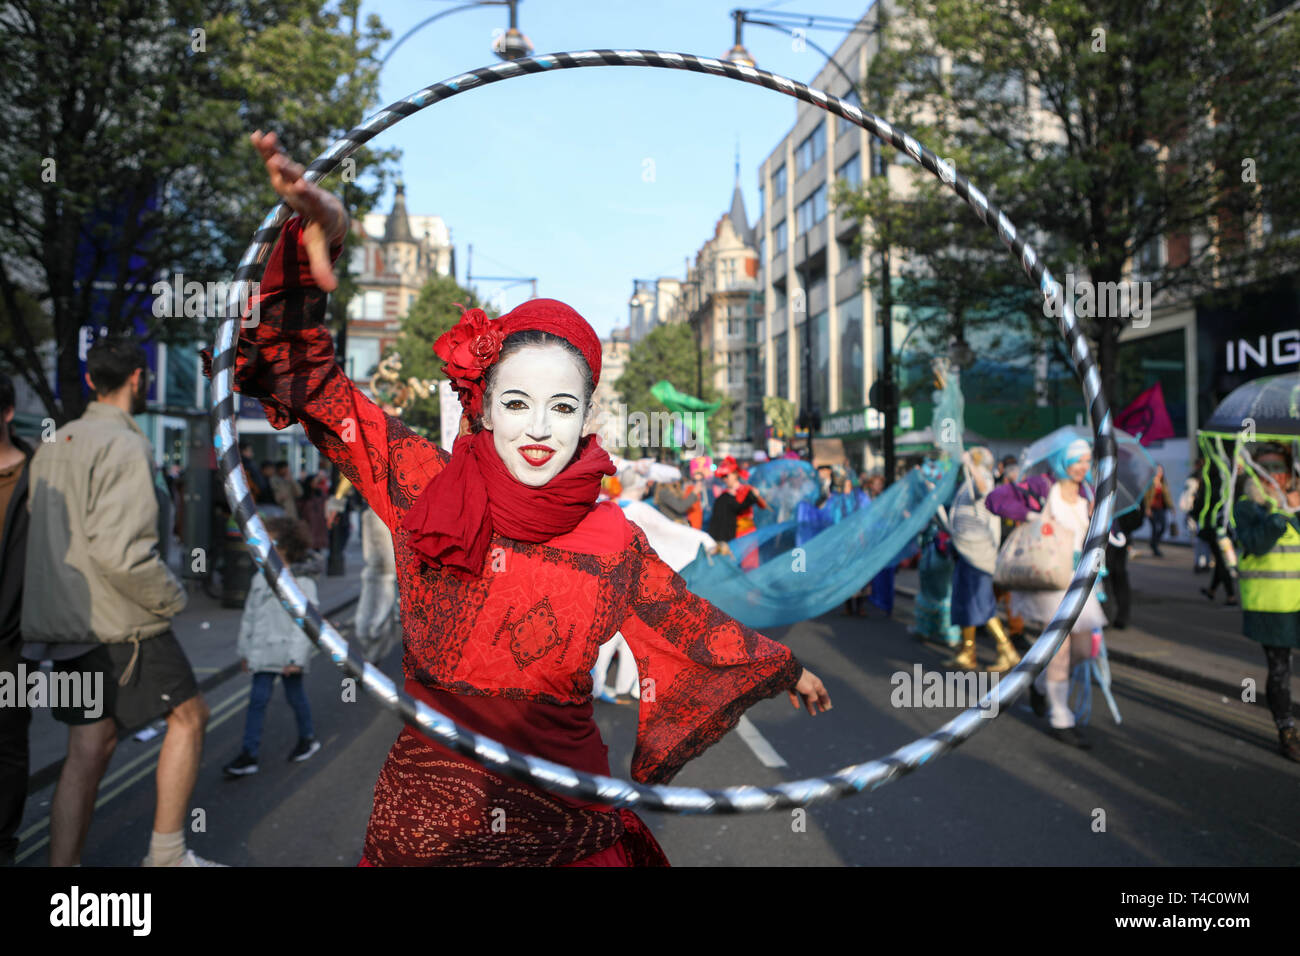 Londres, Royaume-Uni. 15 avril, 2019. Oxford Street, Londres. Groupe de campagne l'environnement rébellion Extinction se déplacent le long d'Oxford Street. Credit : Penelope Barritt/Alamy Live News Photo Stock